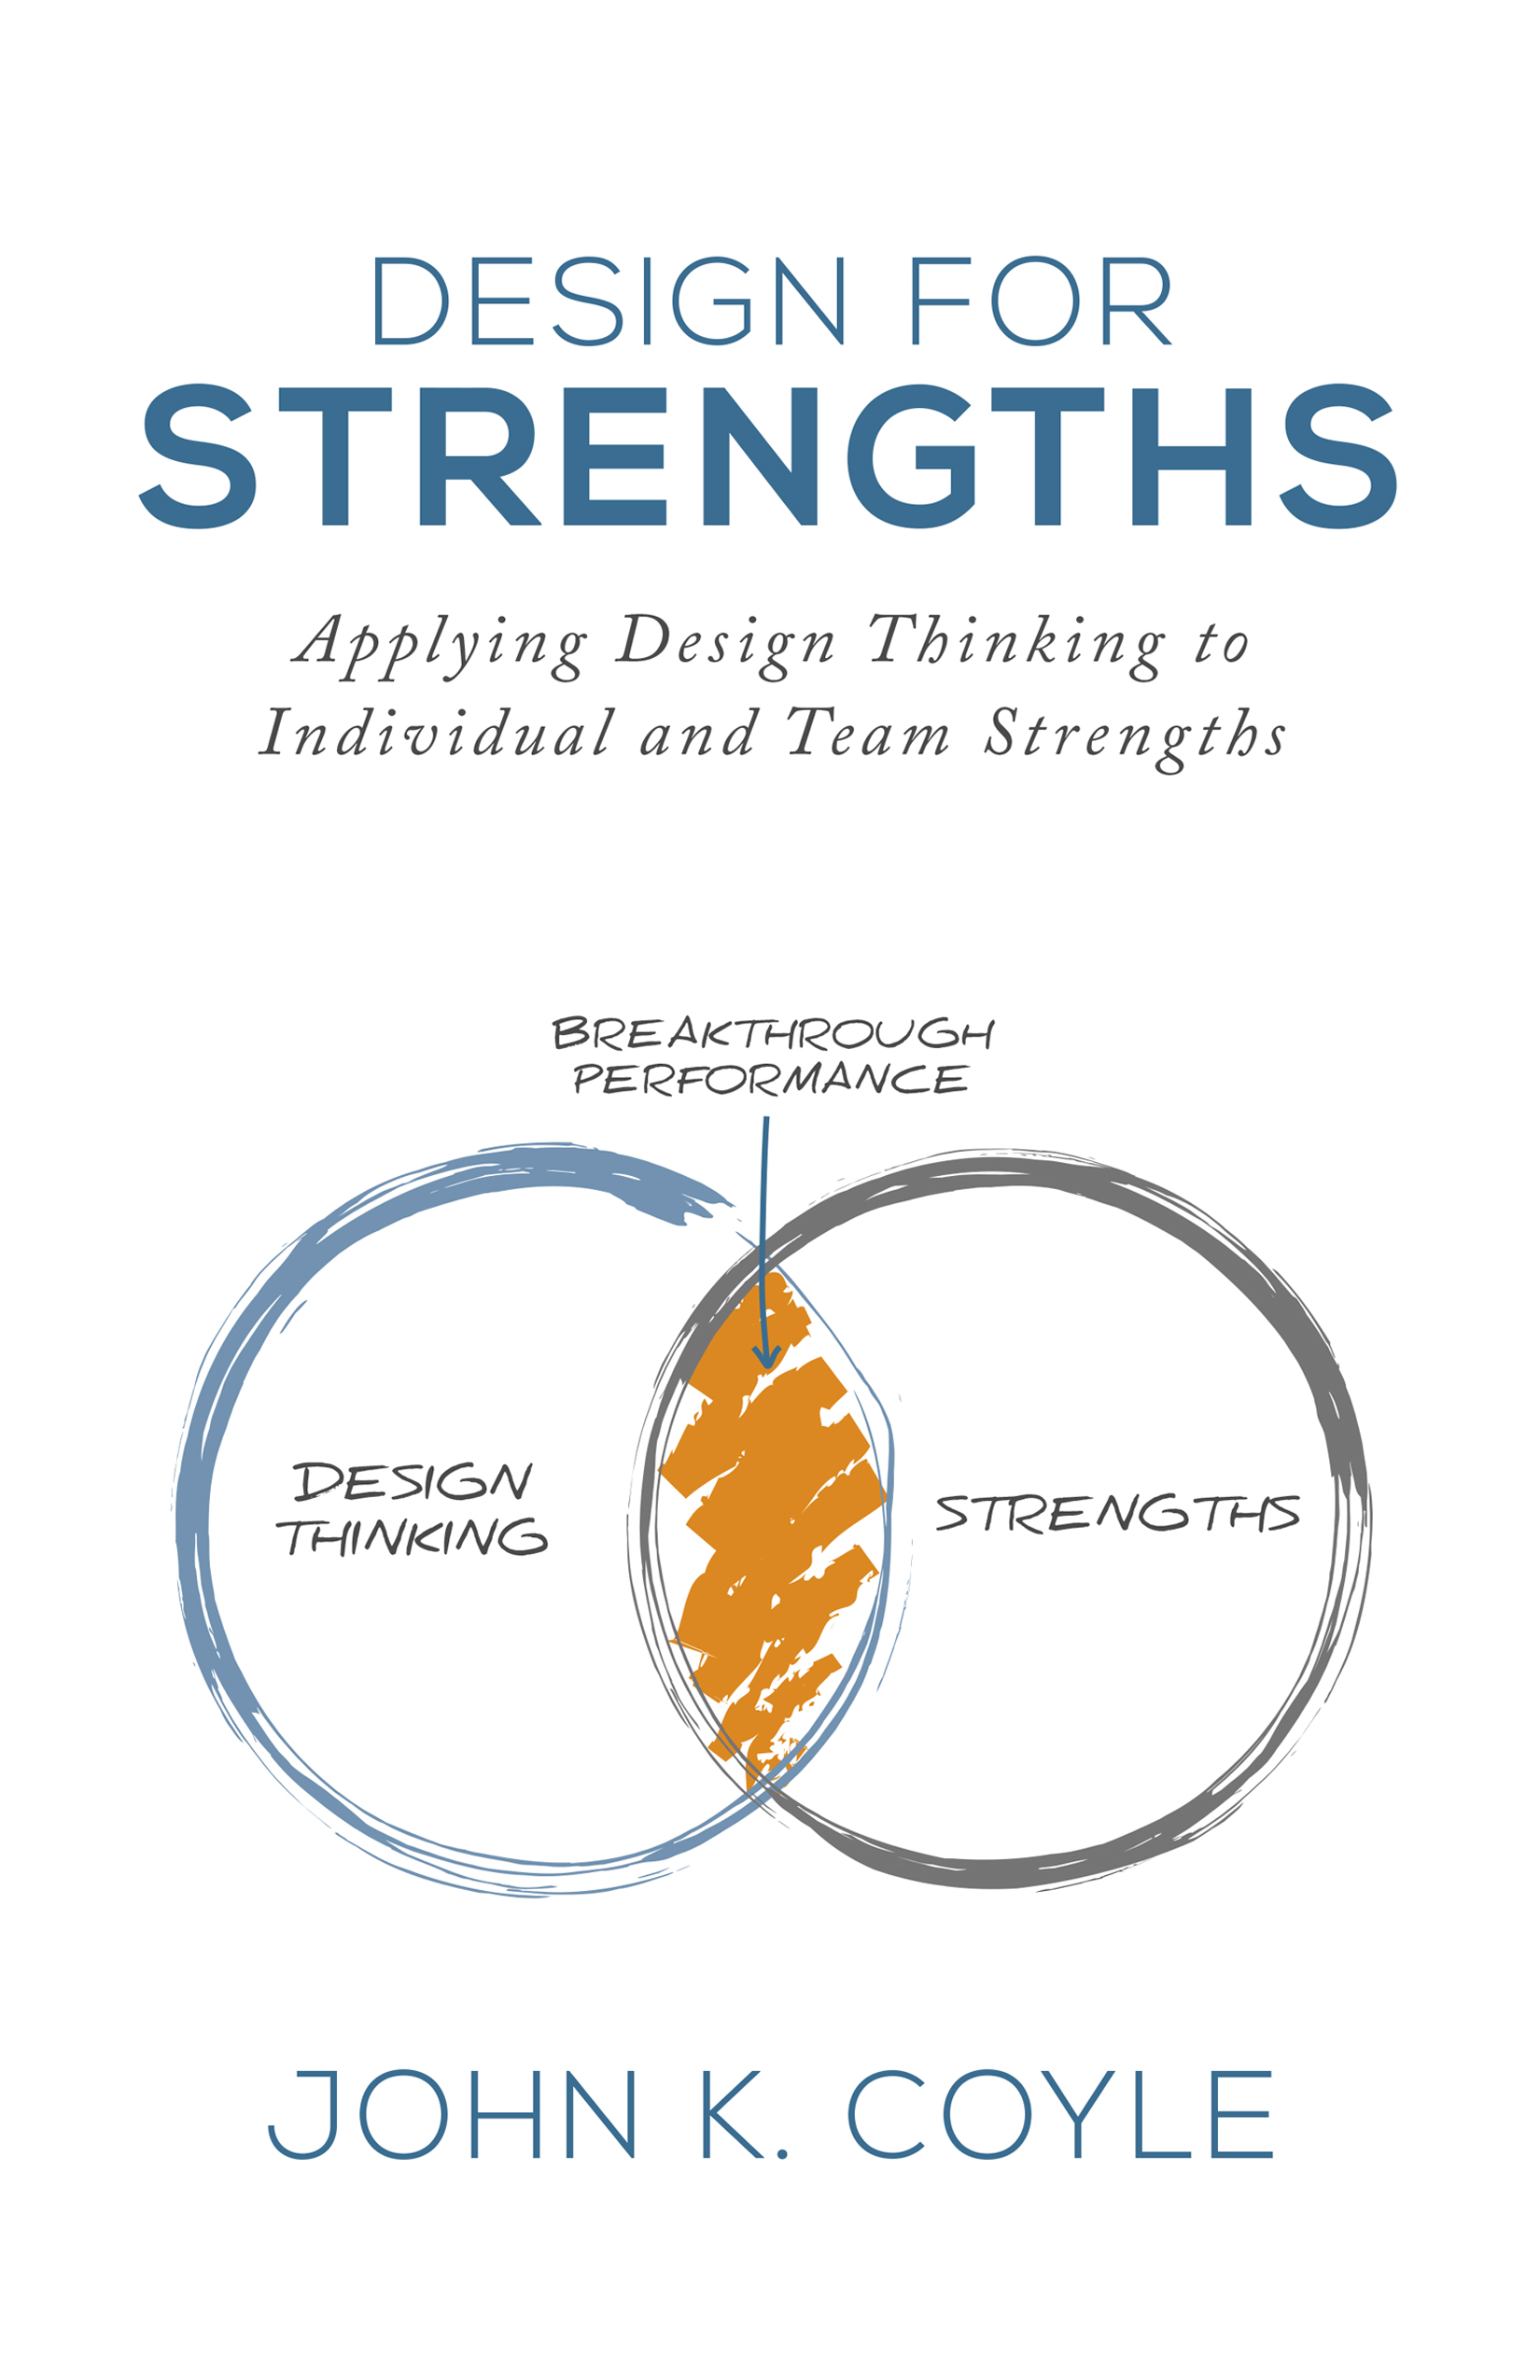 Design For Strengths: Applying Design Thinking to Individual and Team  Strengths, an Ebook by John K  Coyle